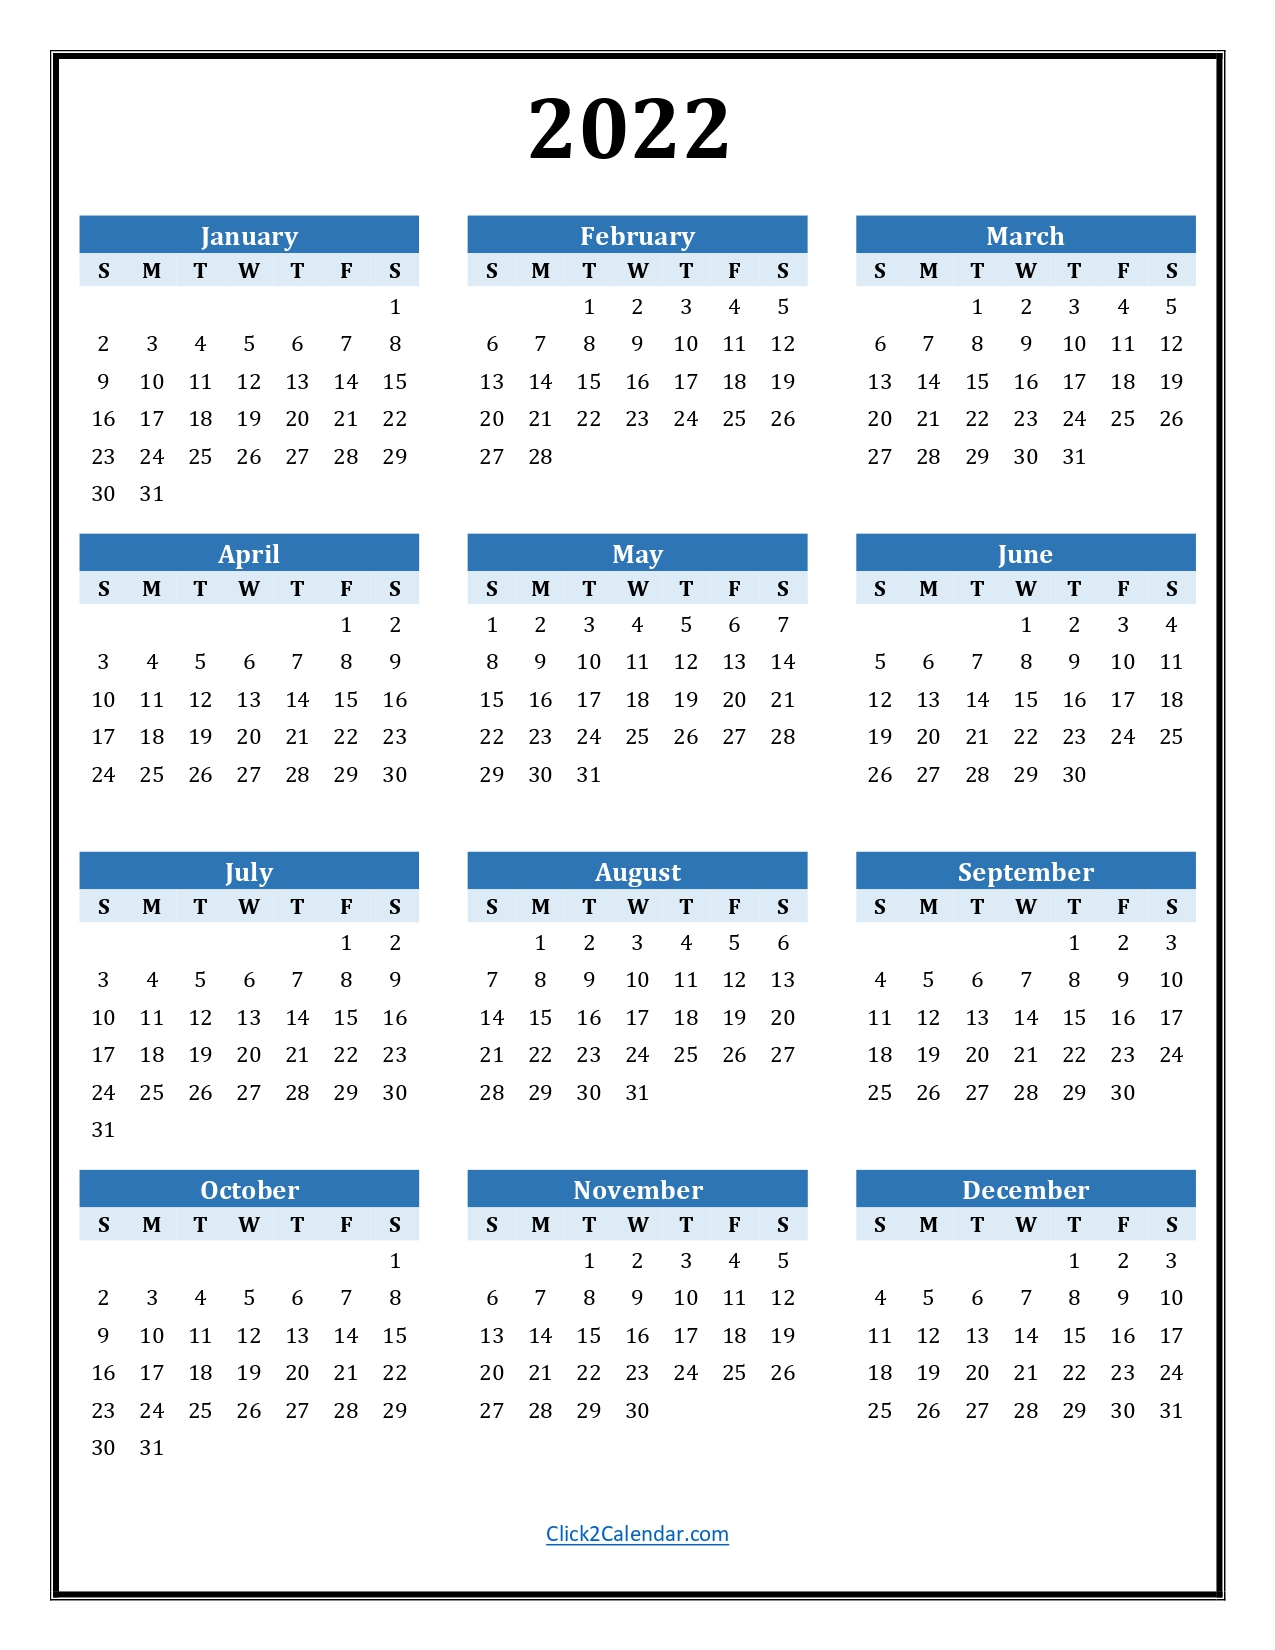 2022 Yearly Calendar Blue with Border Portrait